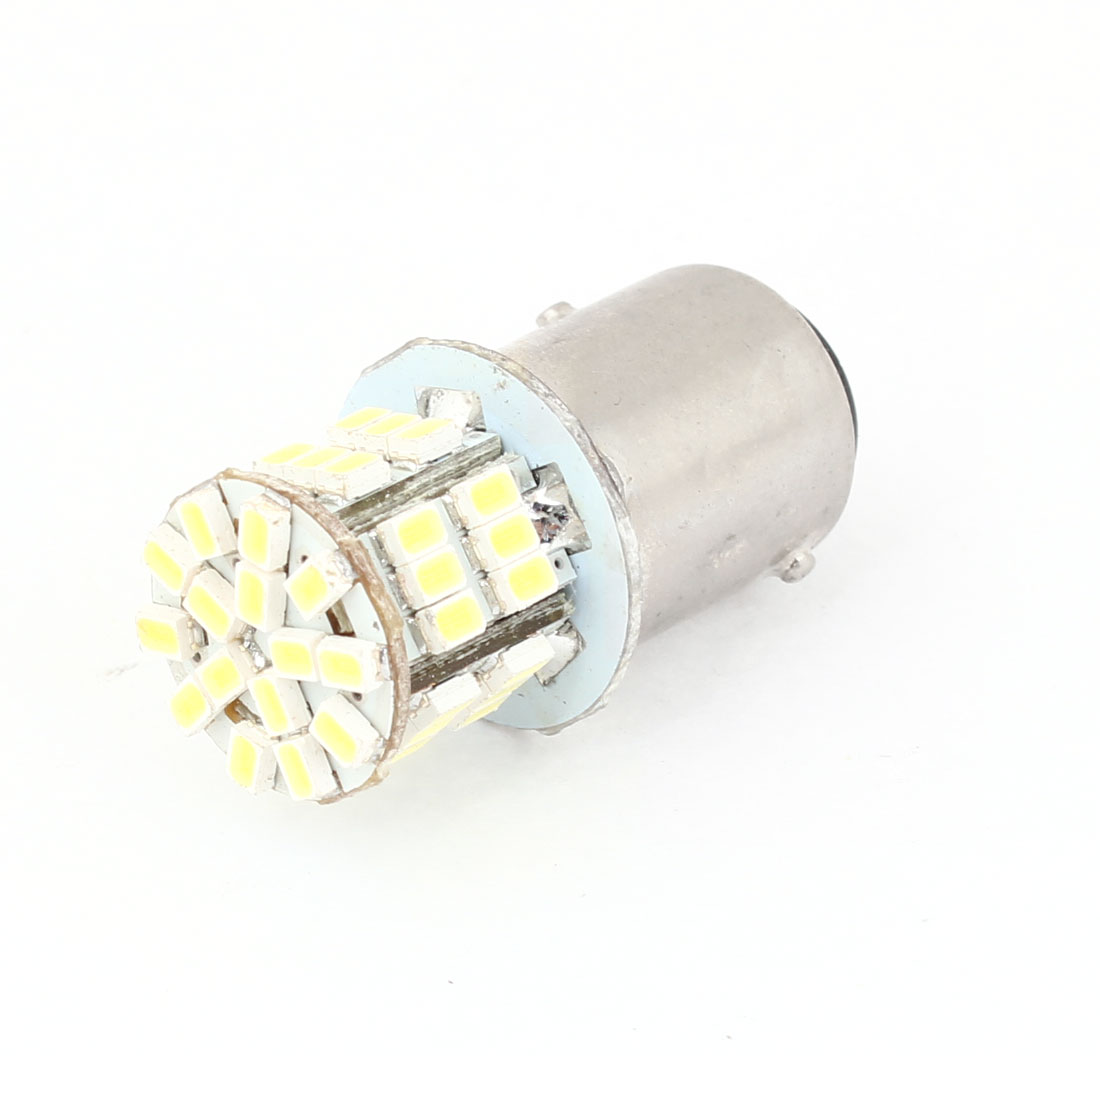 White 45 LED Bulbs Reversing Brake Light BAY15D 1157 for Car